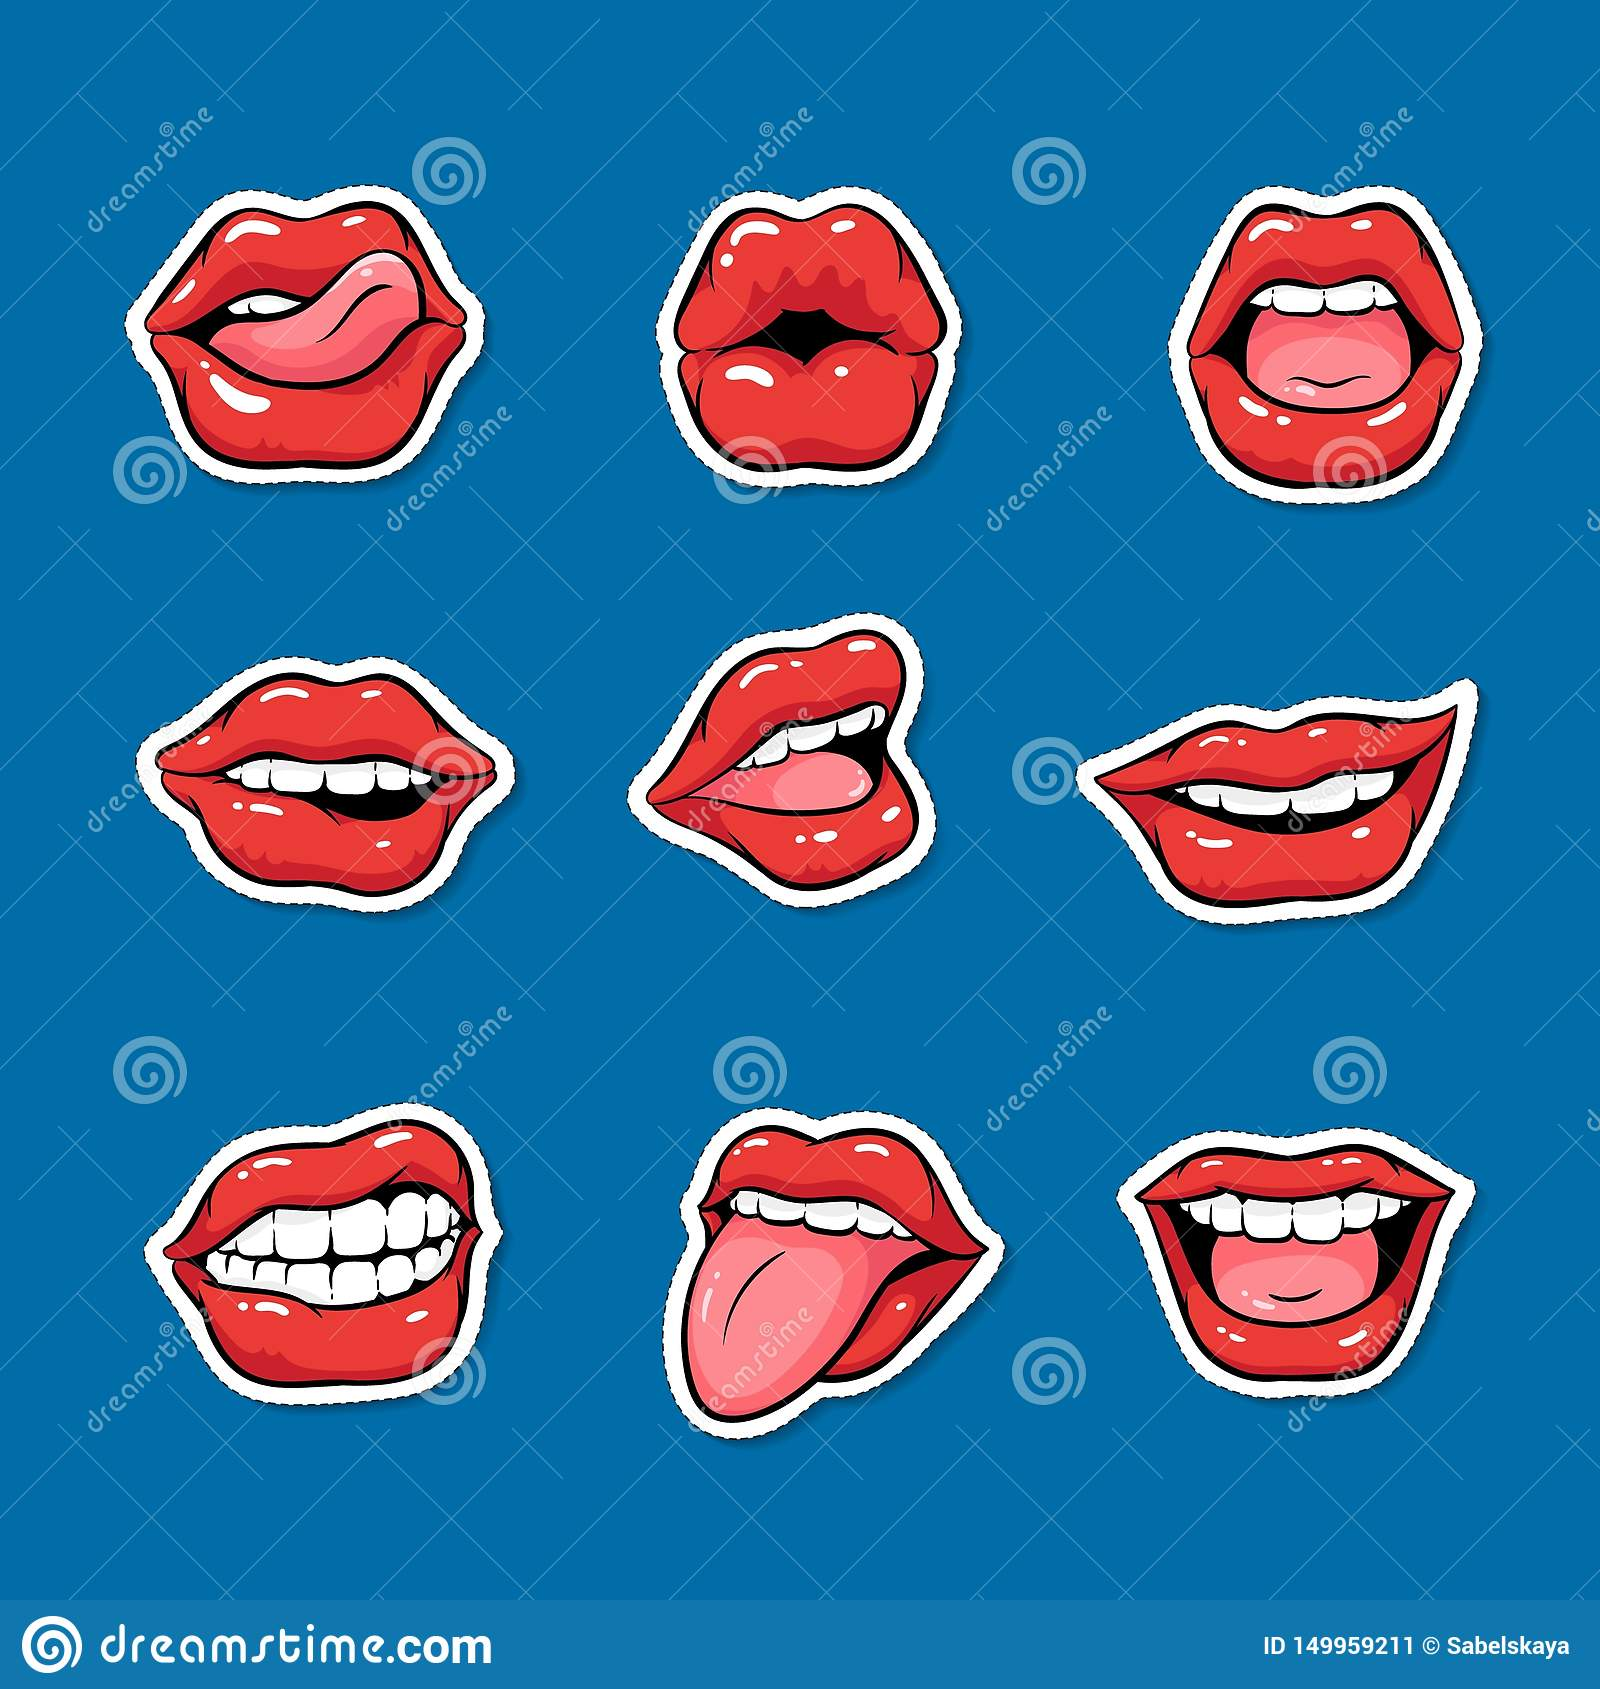 Set Of Female Mouths With Red Lipstick Cartoon Pop Art Style Stock Vector Illustration Of Comic Bite 149959211